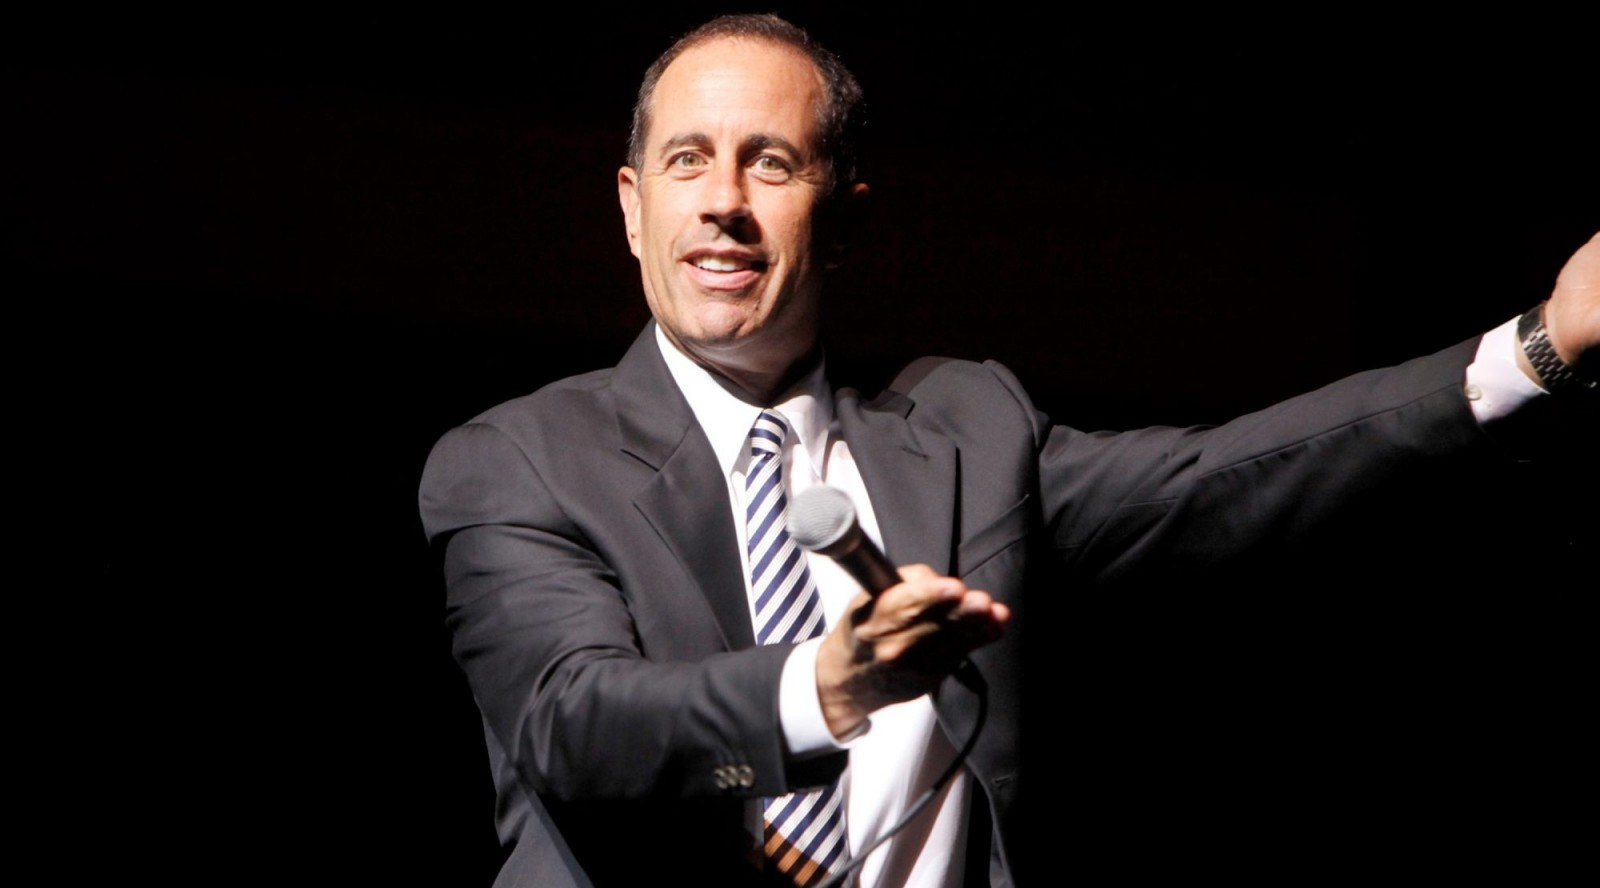 Jerry Seinfeld returns to Shea's Performing Arts Center for two sold-out shows on Jan. 22.